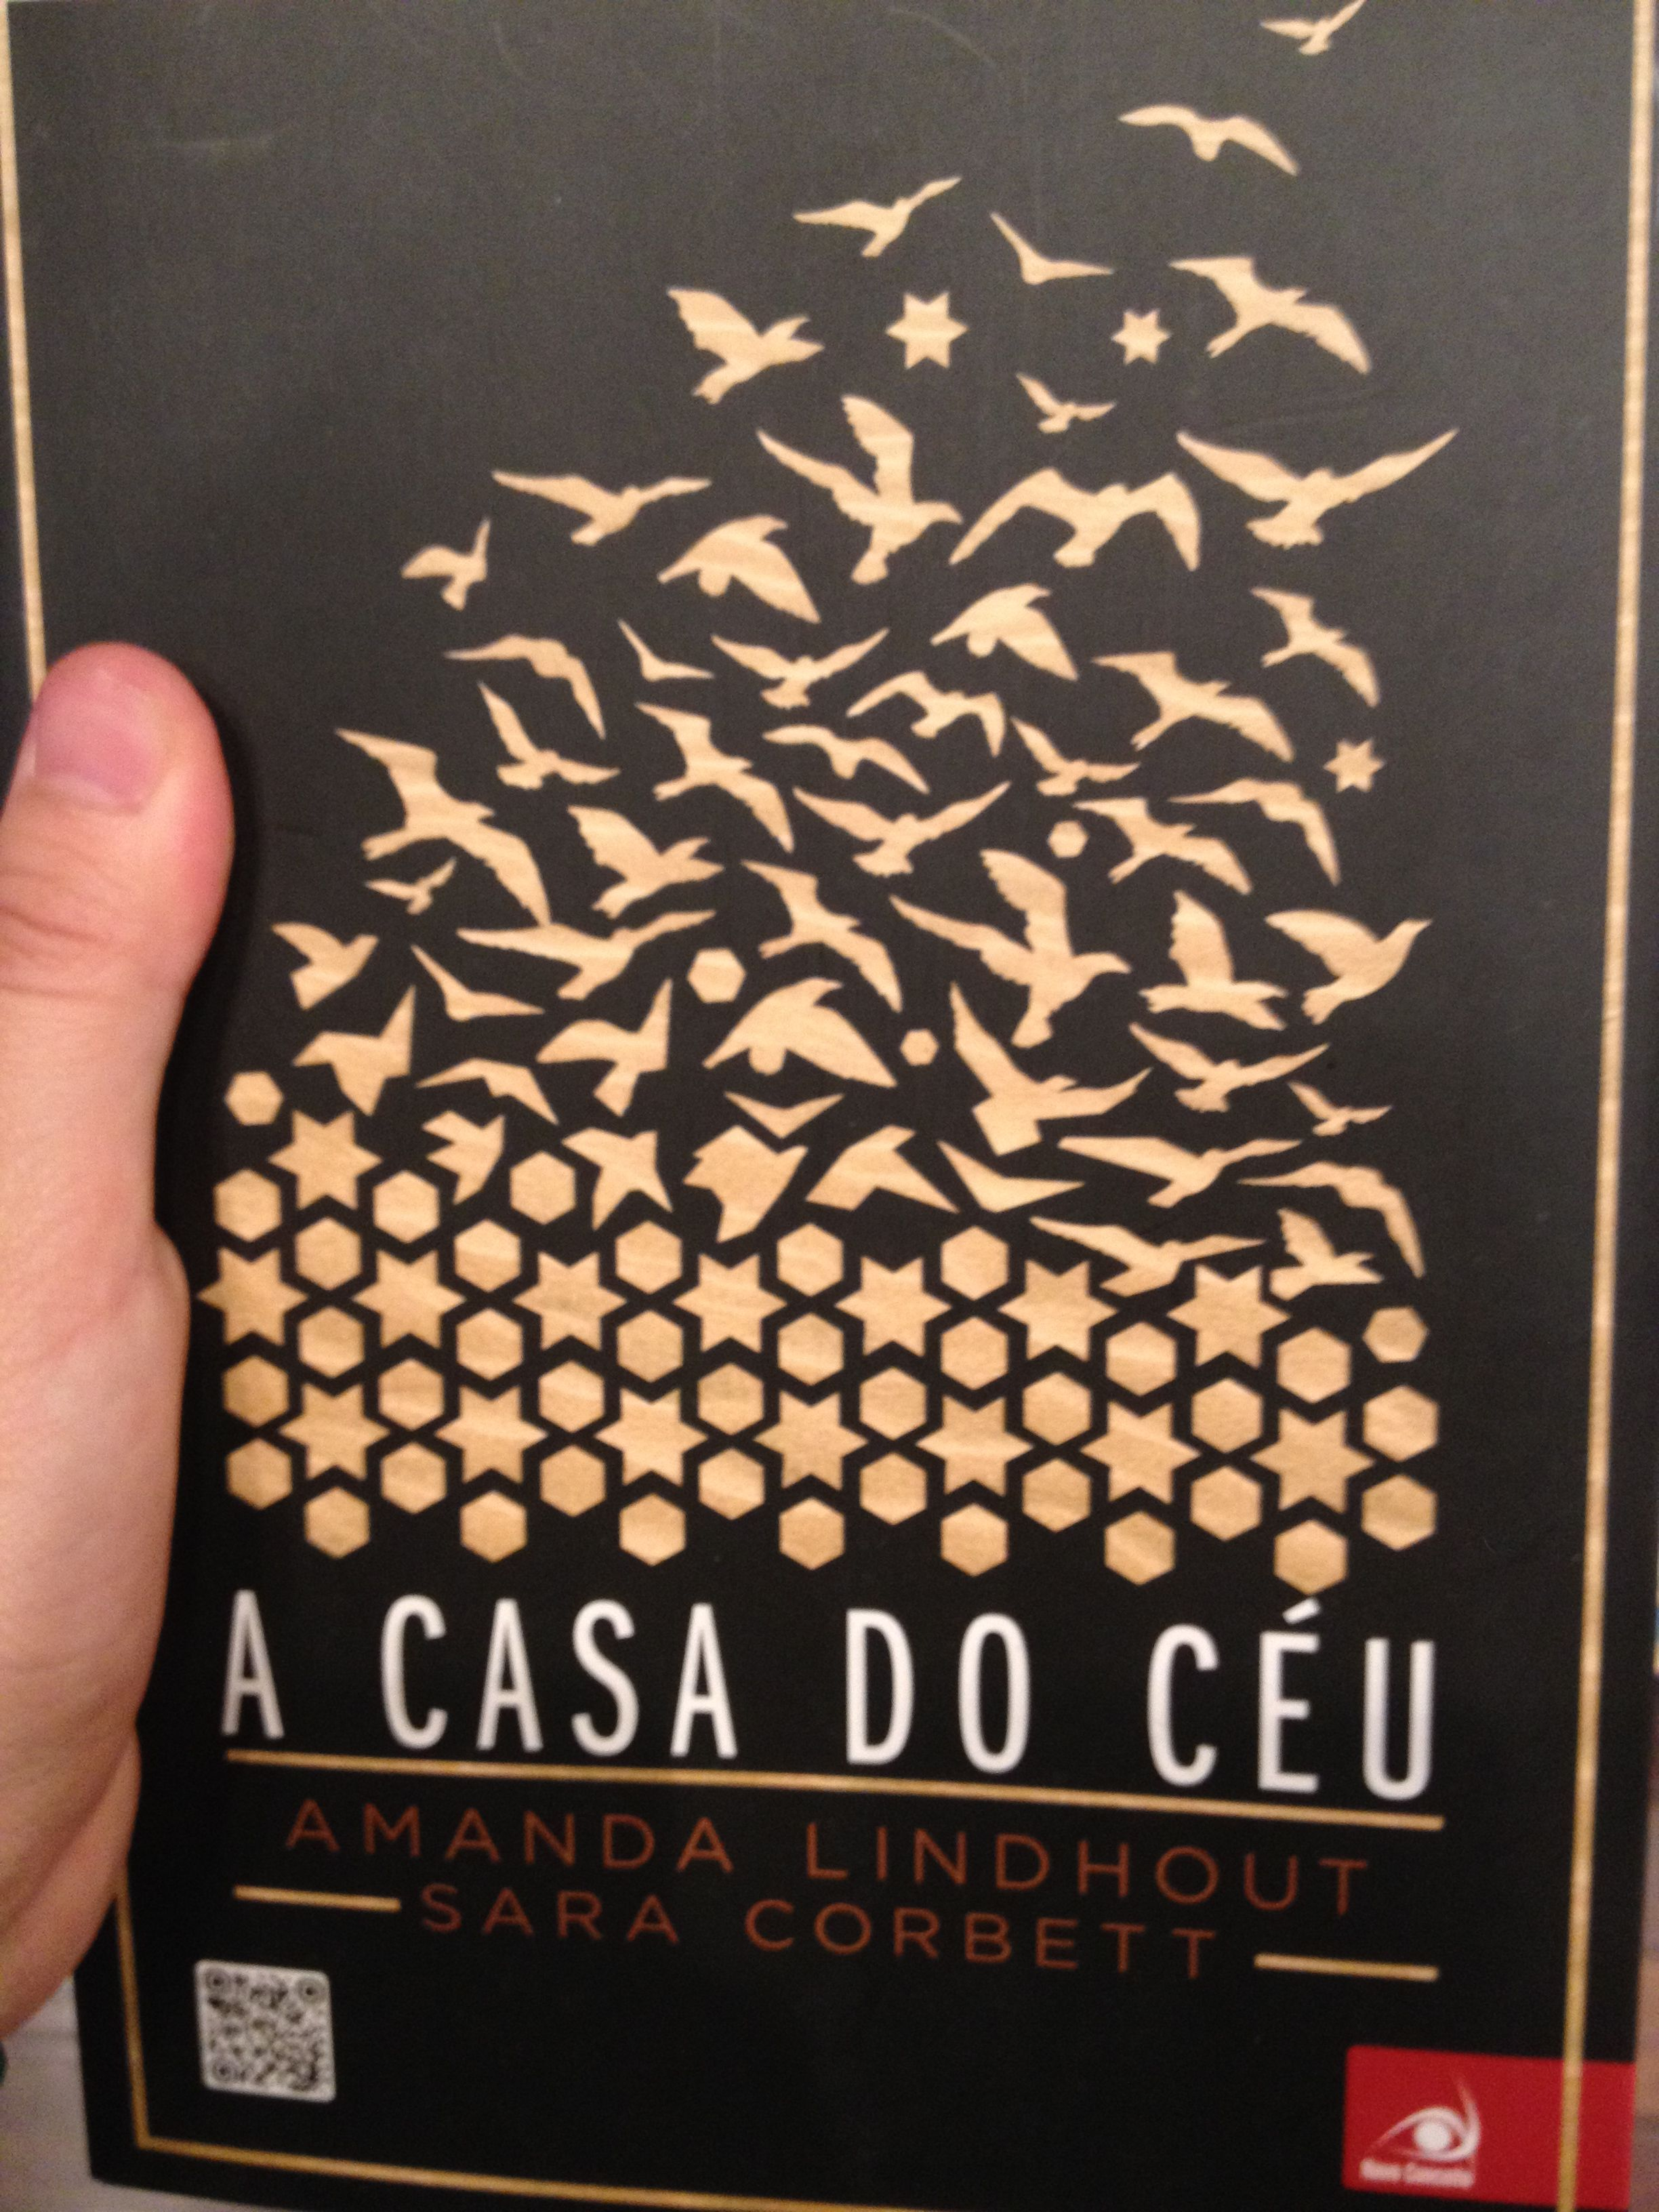 Find this in a bookstore in Brazil. Love the design